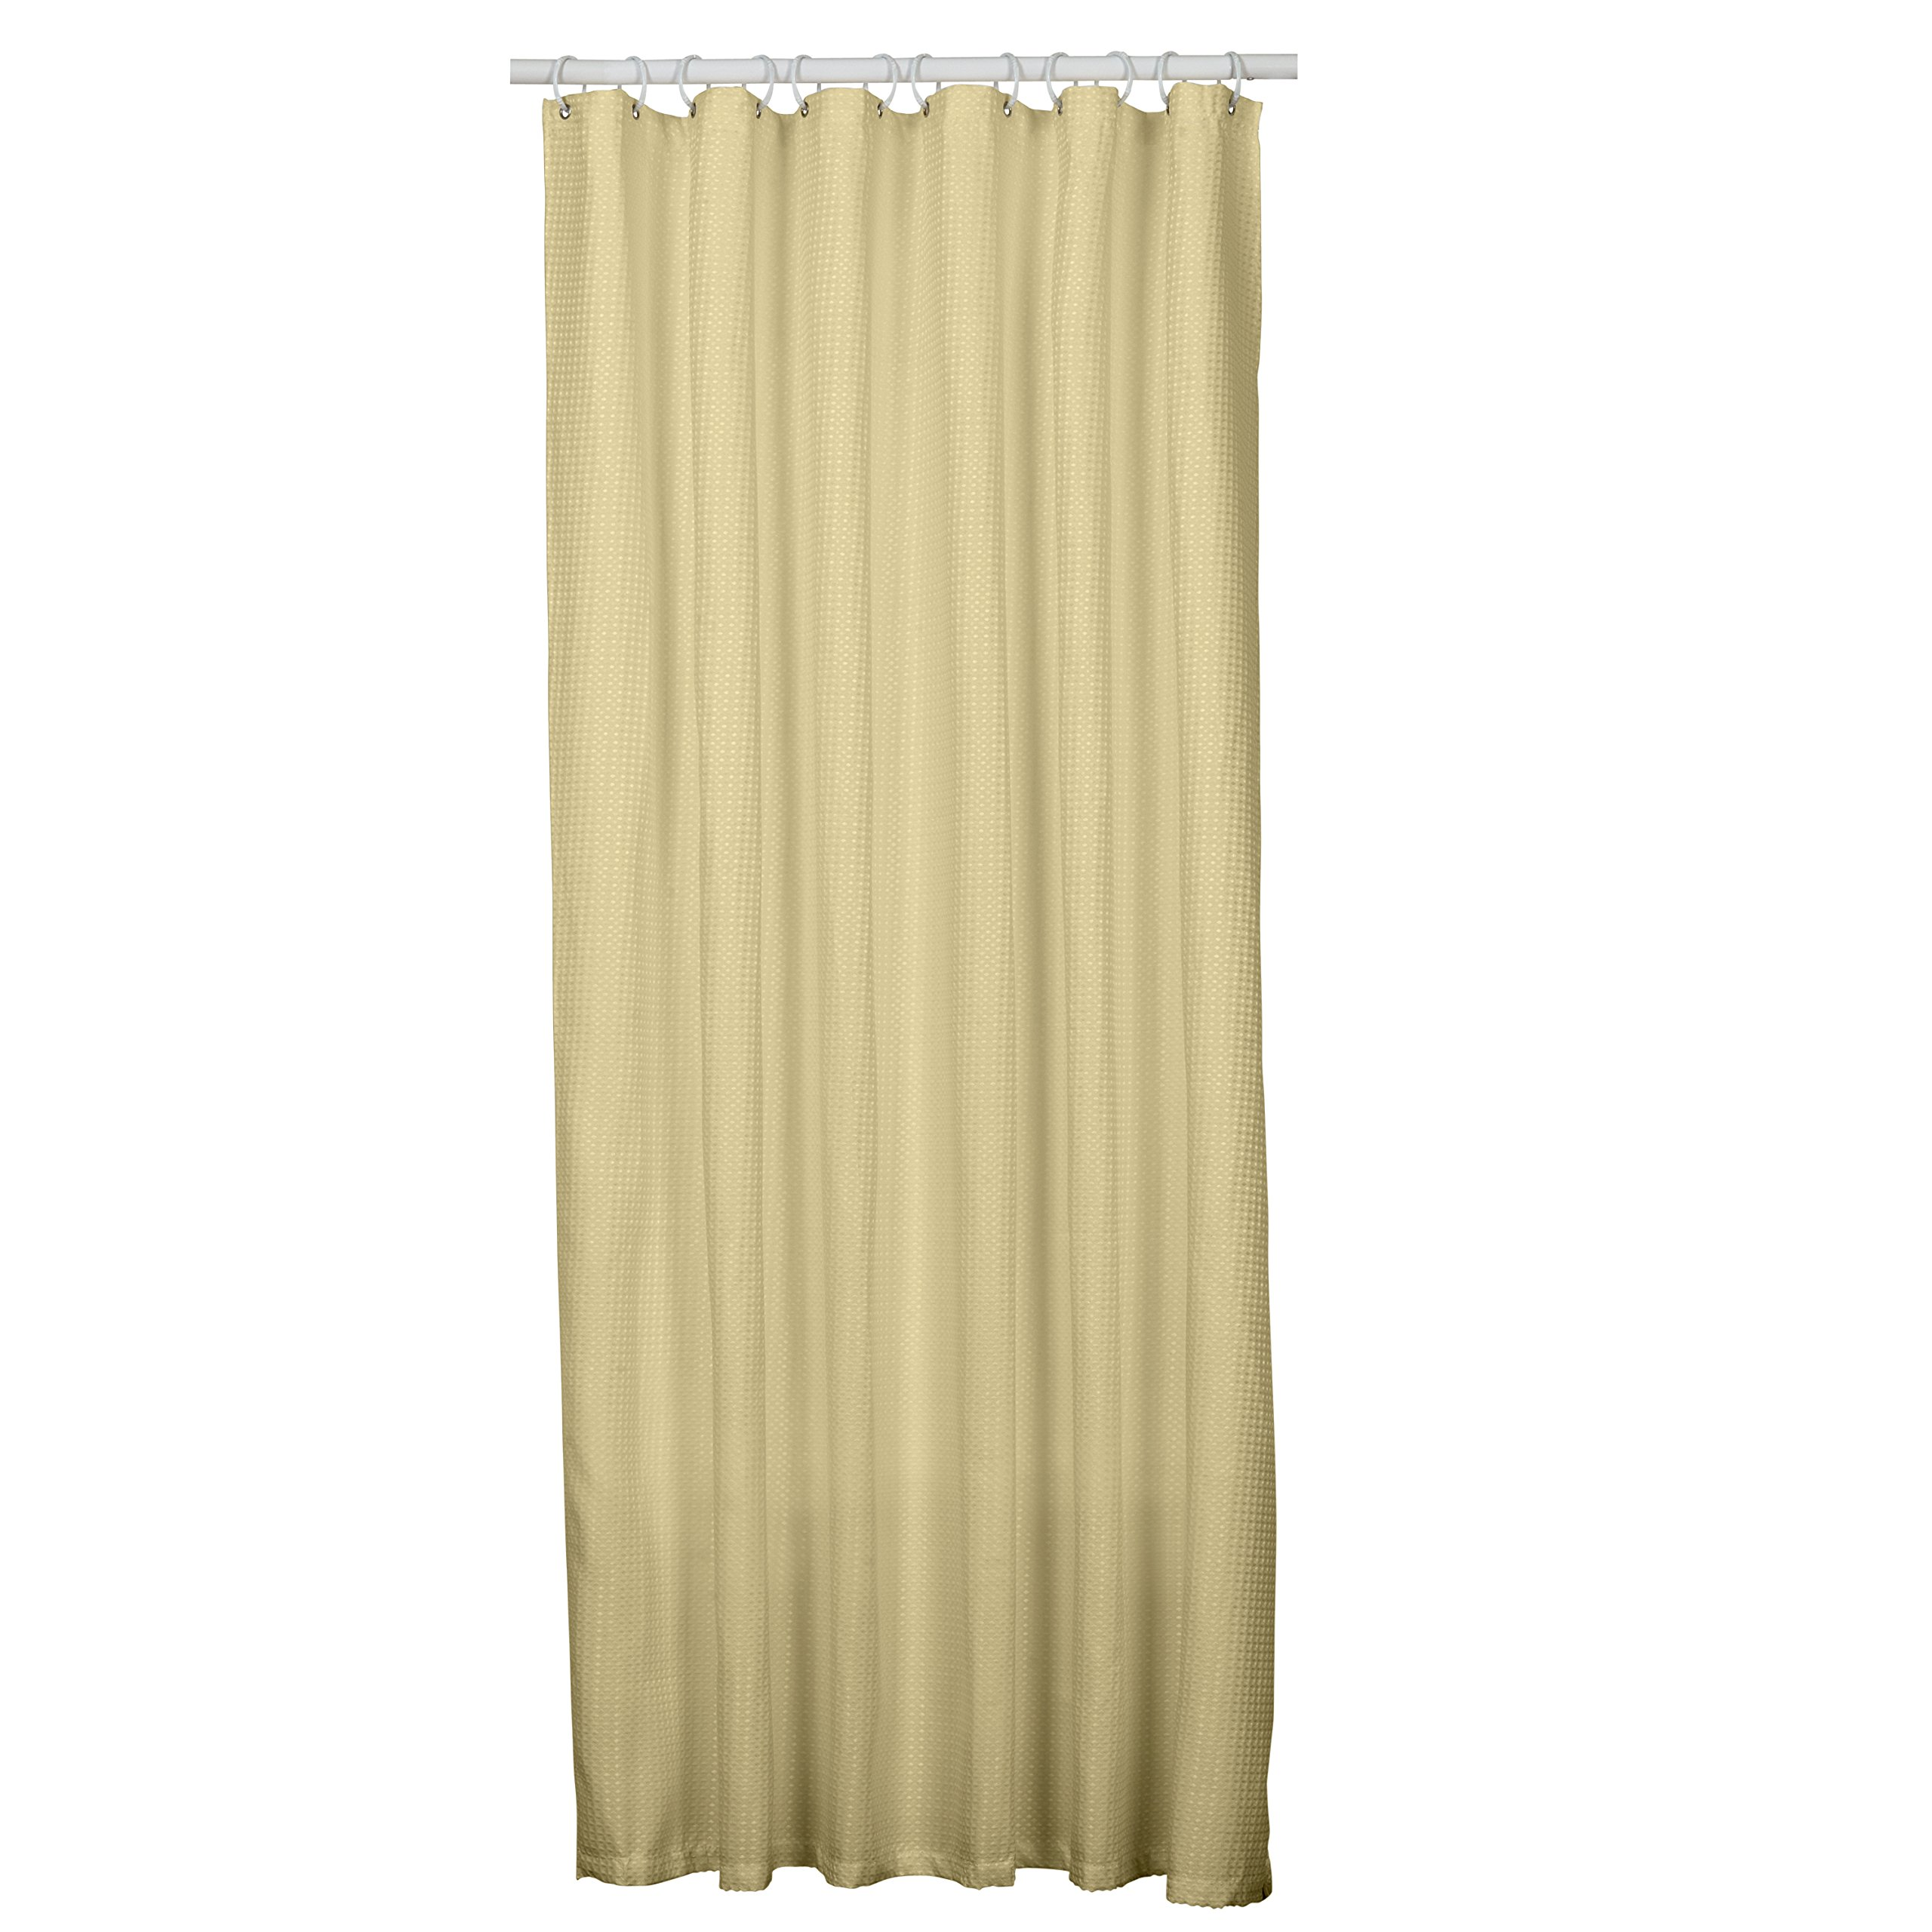 Zenna Home H21BB, Luxury HotelWaffle Weave Shower Curtain, 70 in x 72 in, Taupe